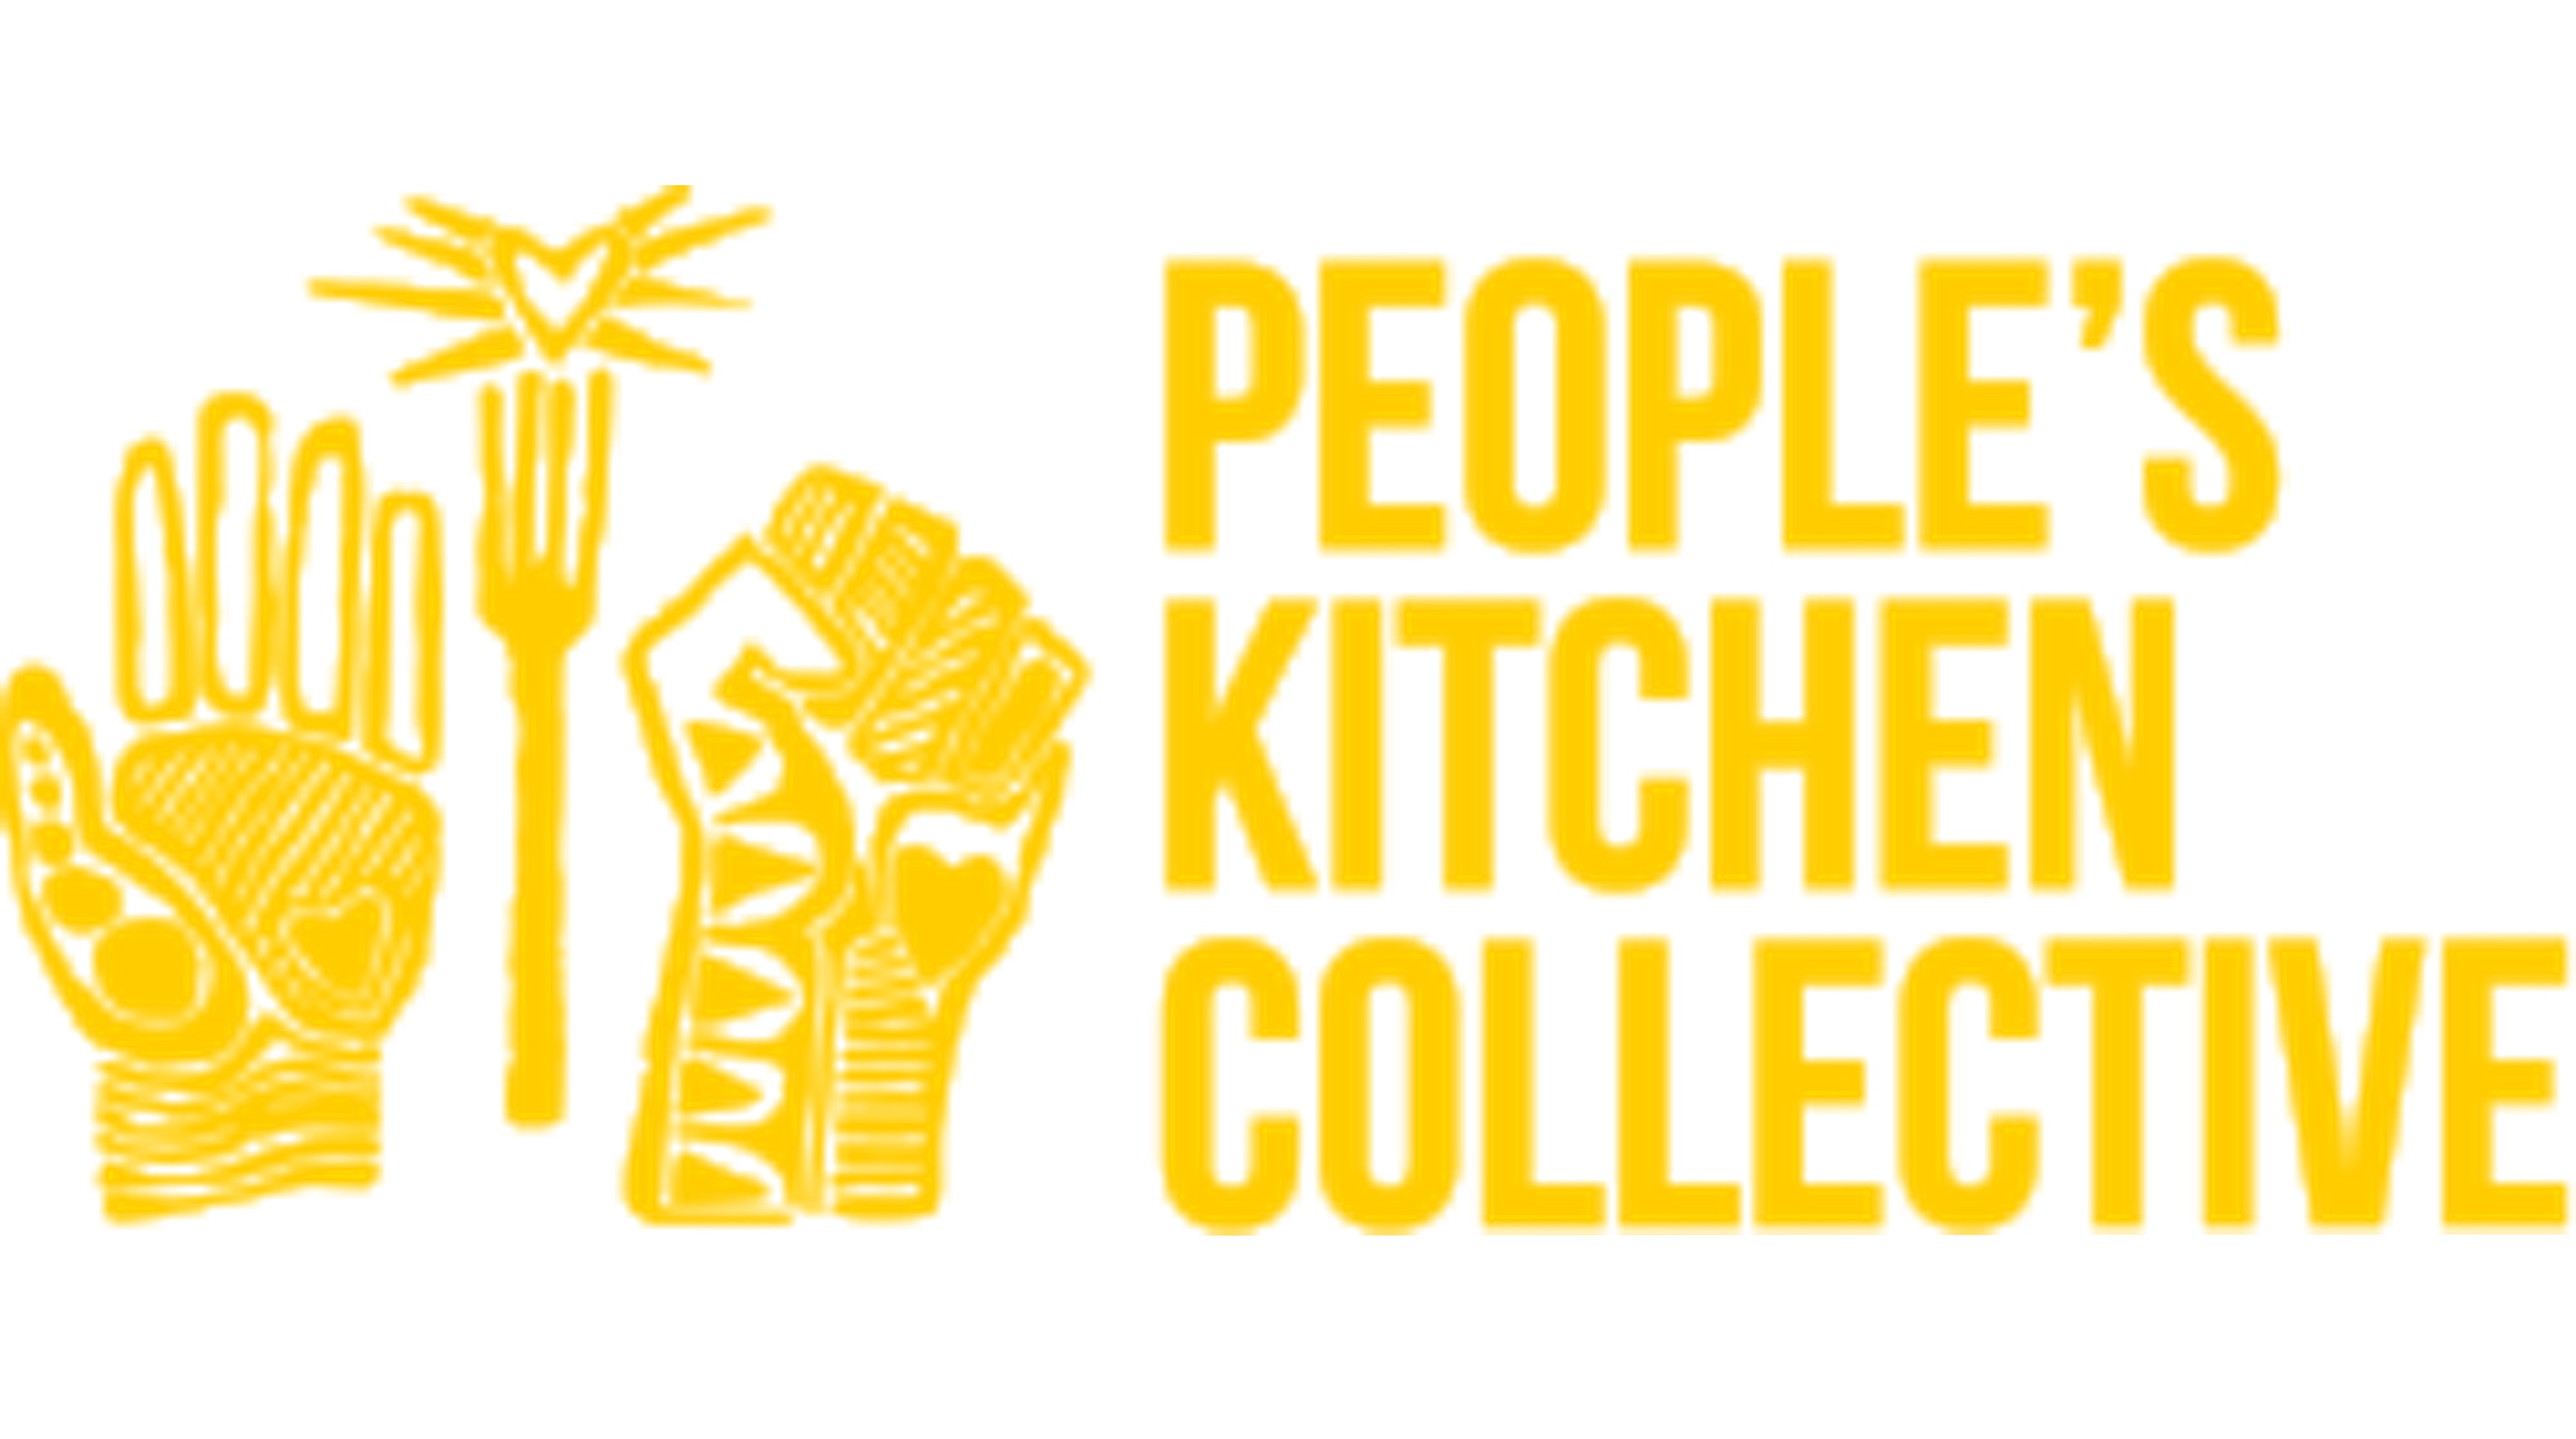 People's Kitchen Collective